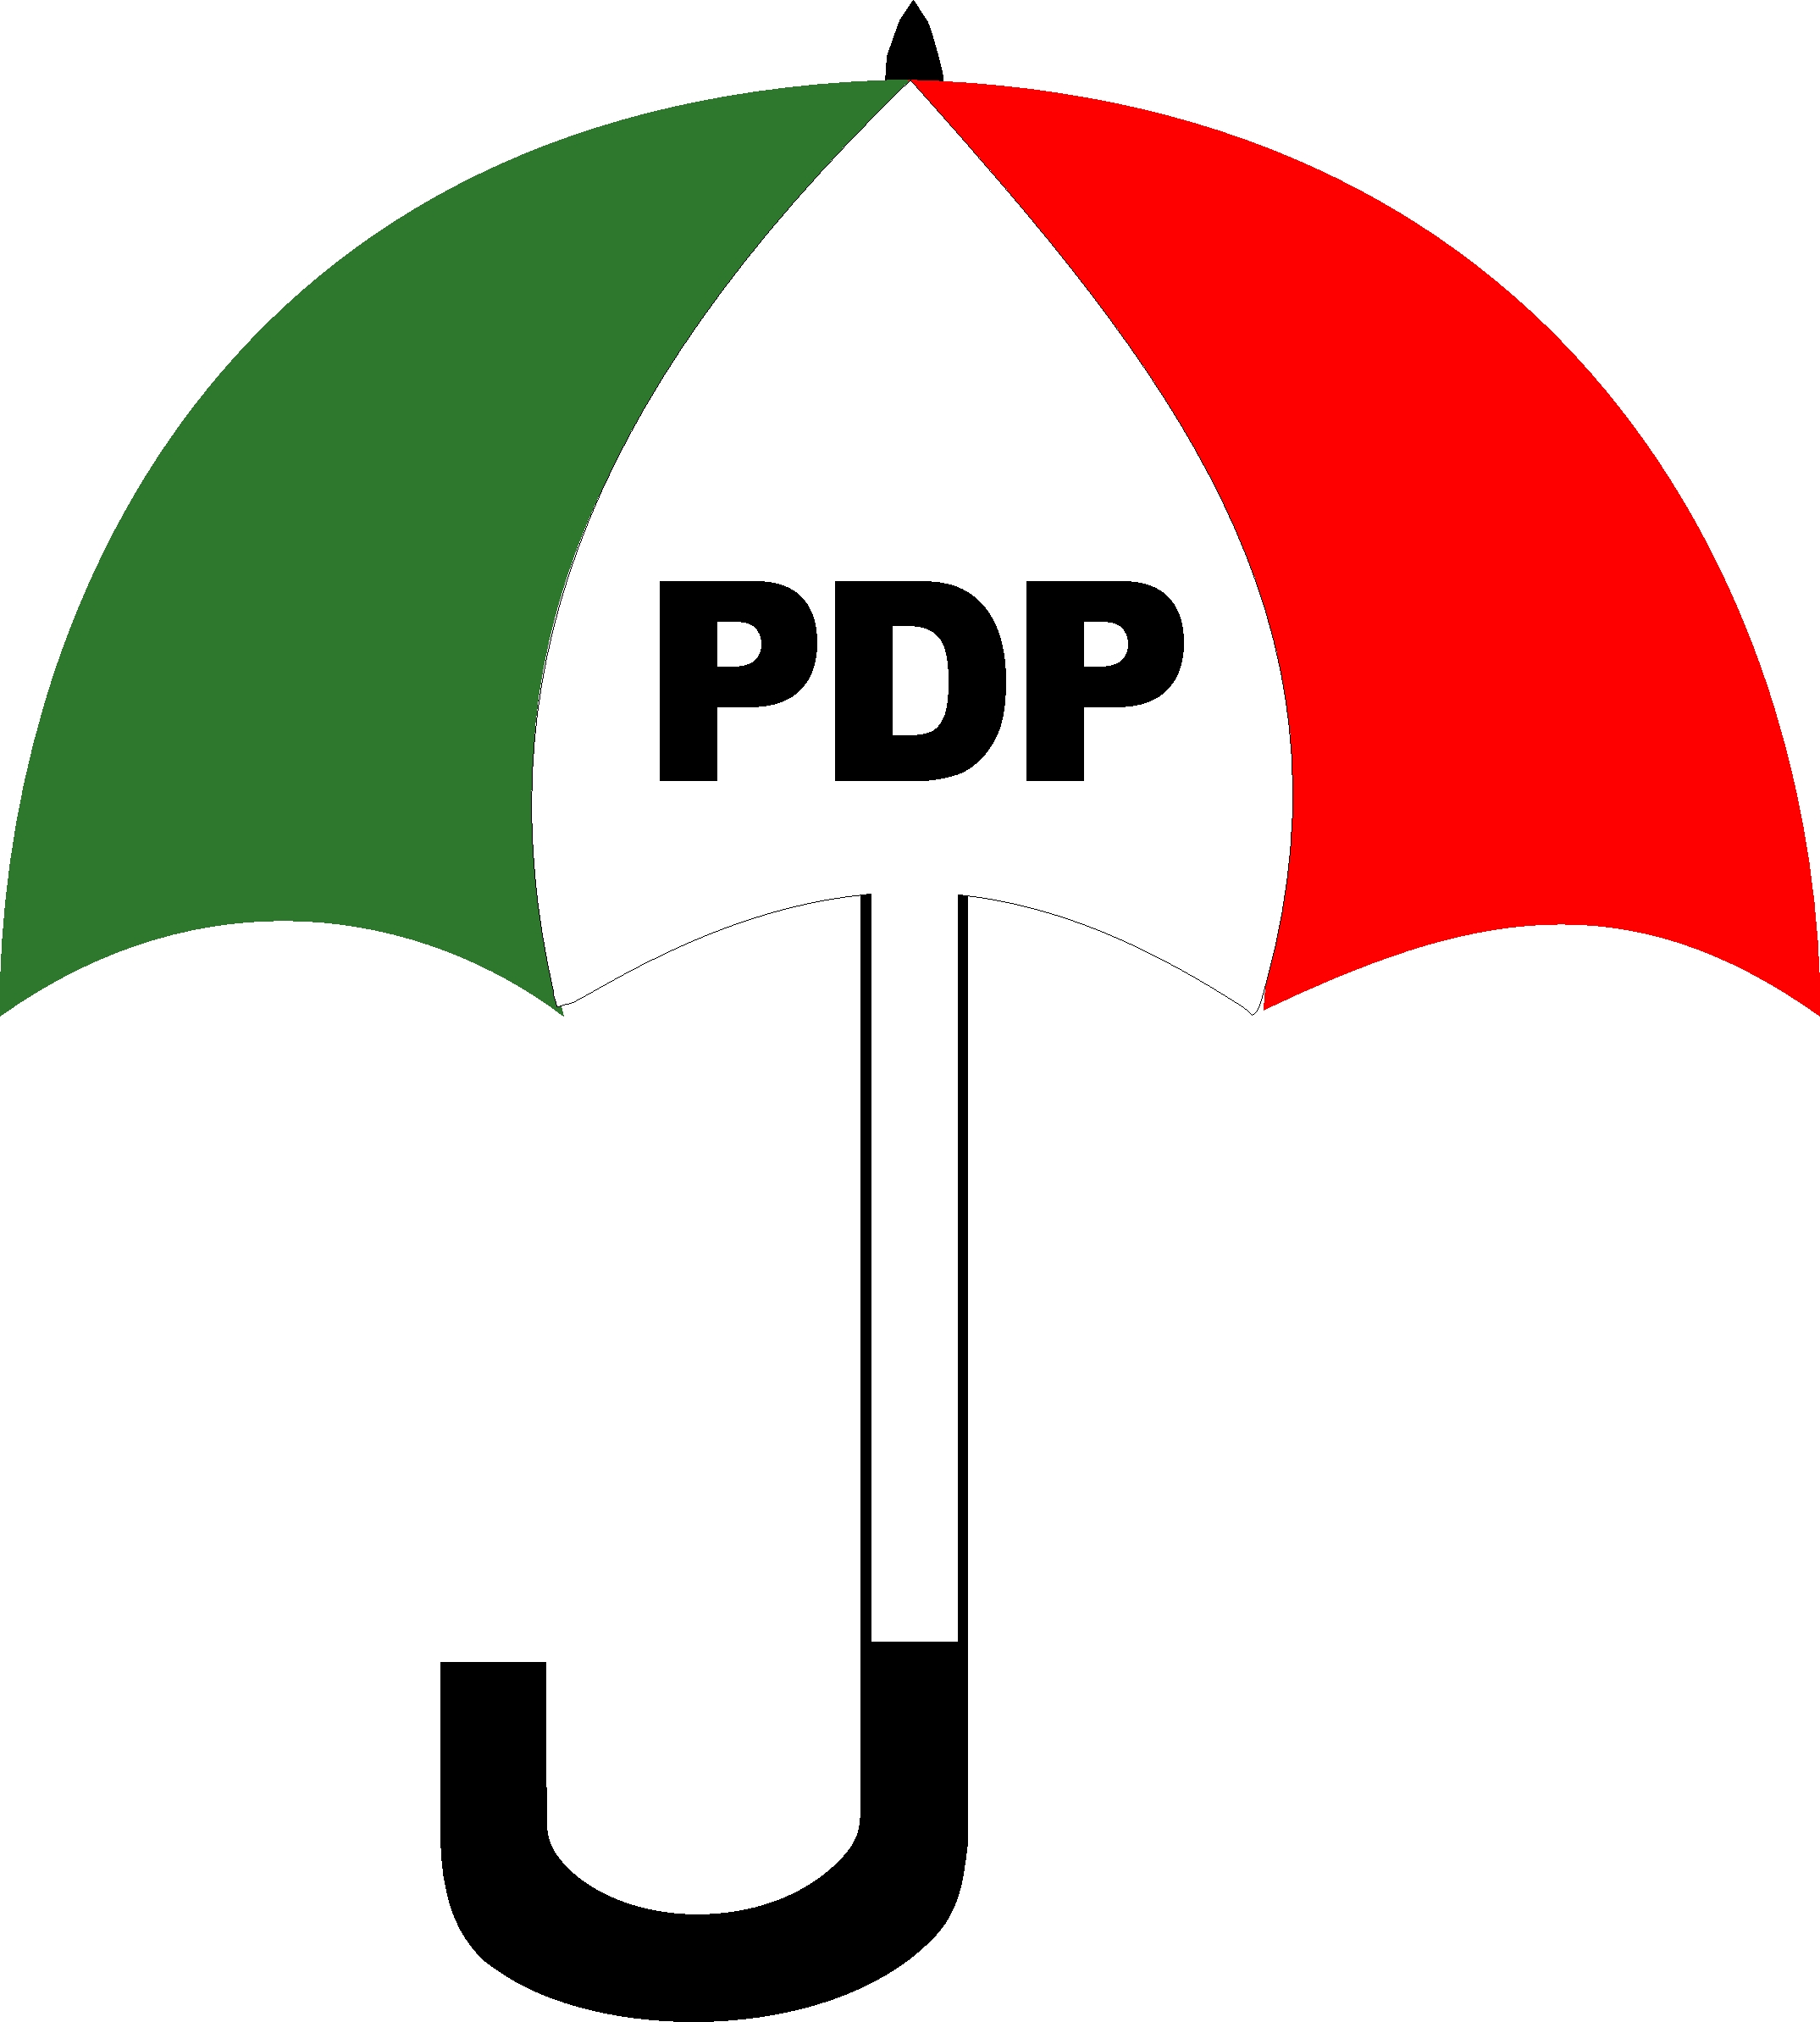 10 PDP Top Members Who Collected Illegal Funds from Jonathan – THE NATION